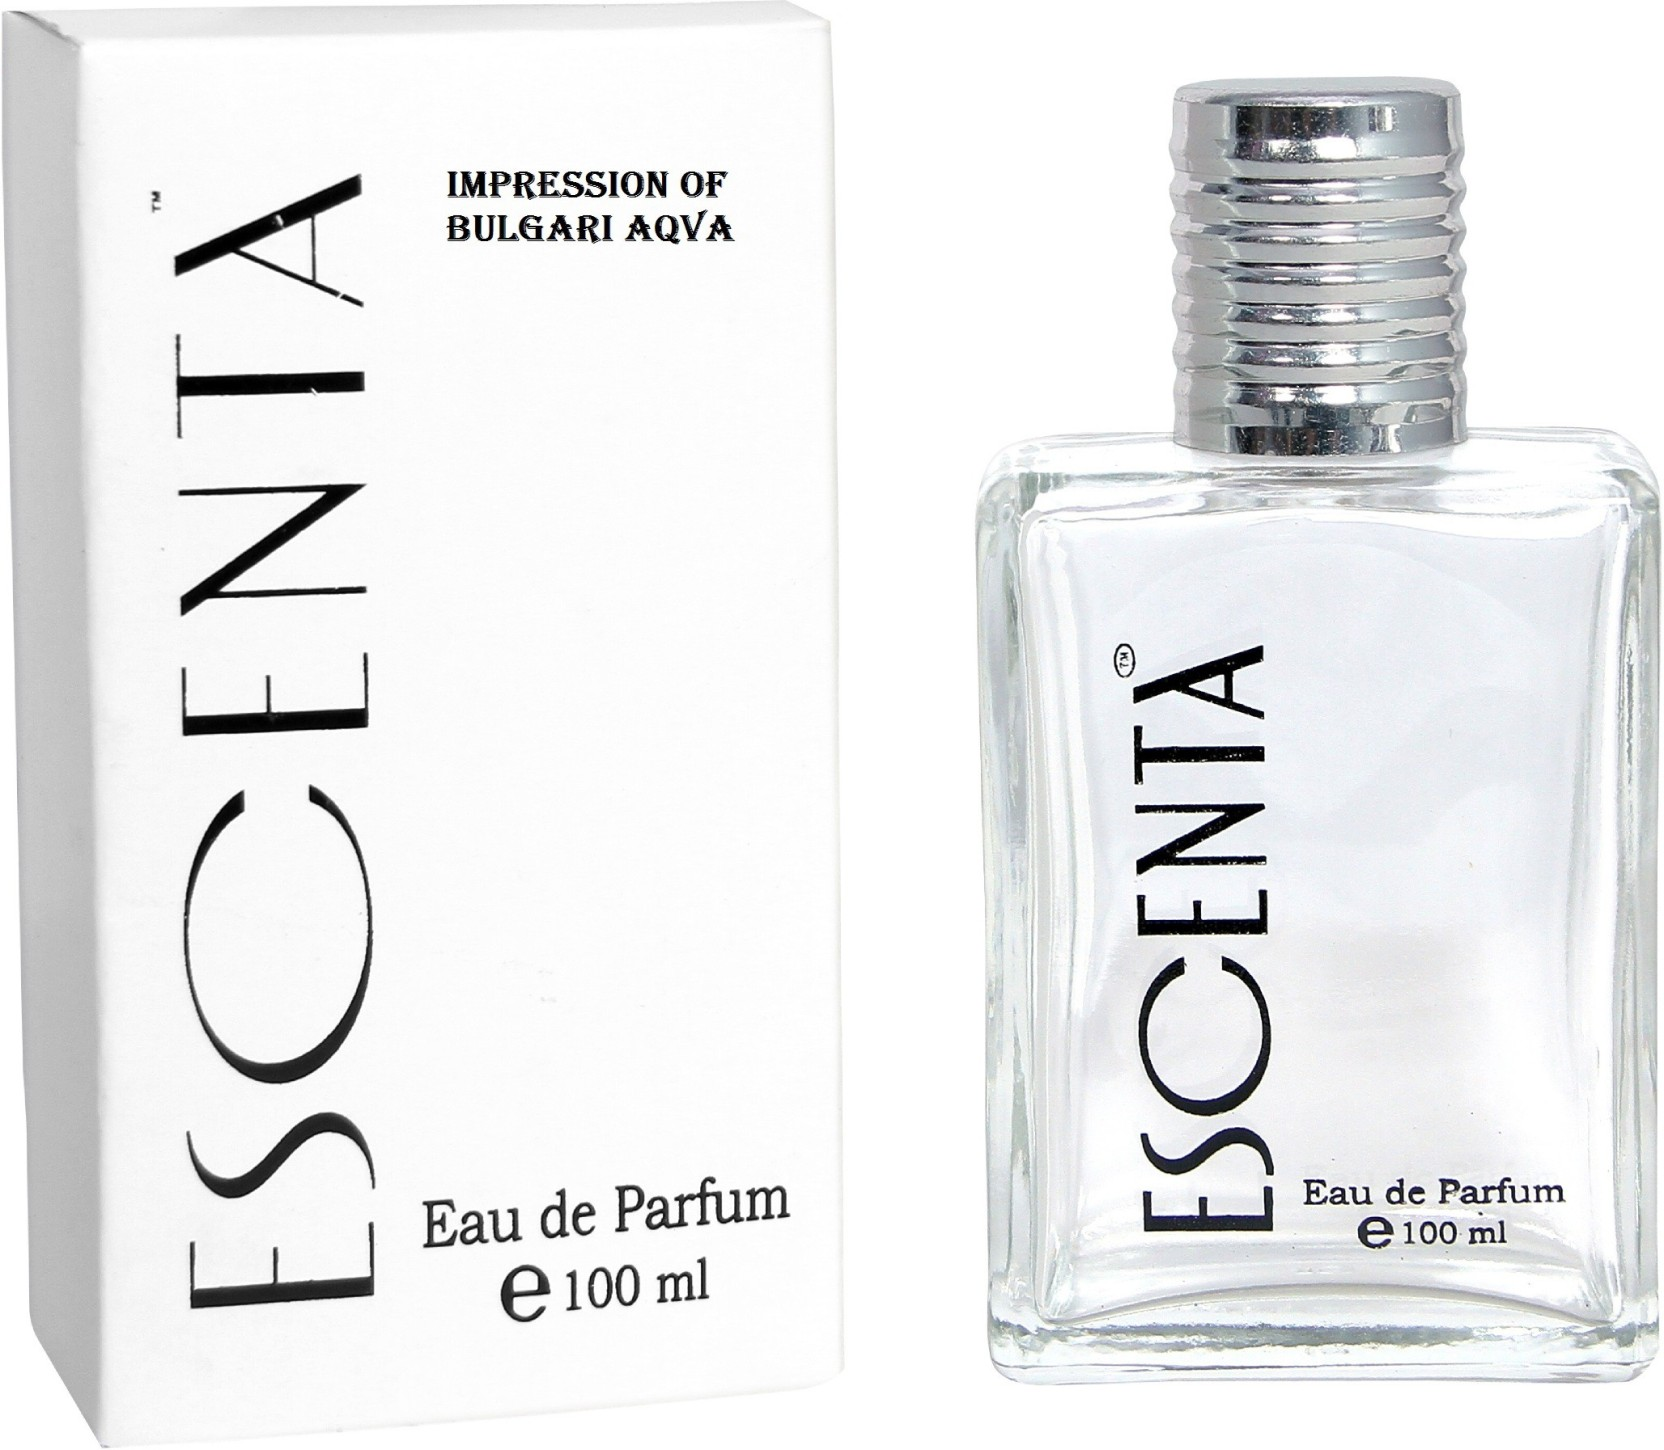 Buy Escenta An Impression Of Bvlgari Aqva Eau De Parfum 100 Ml Man Edt 100ml For Men